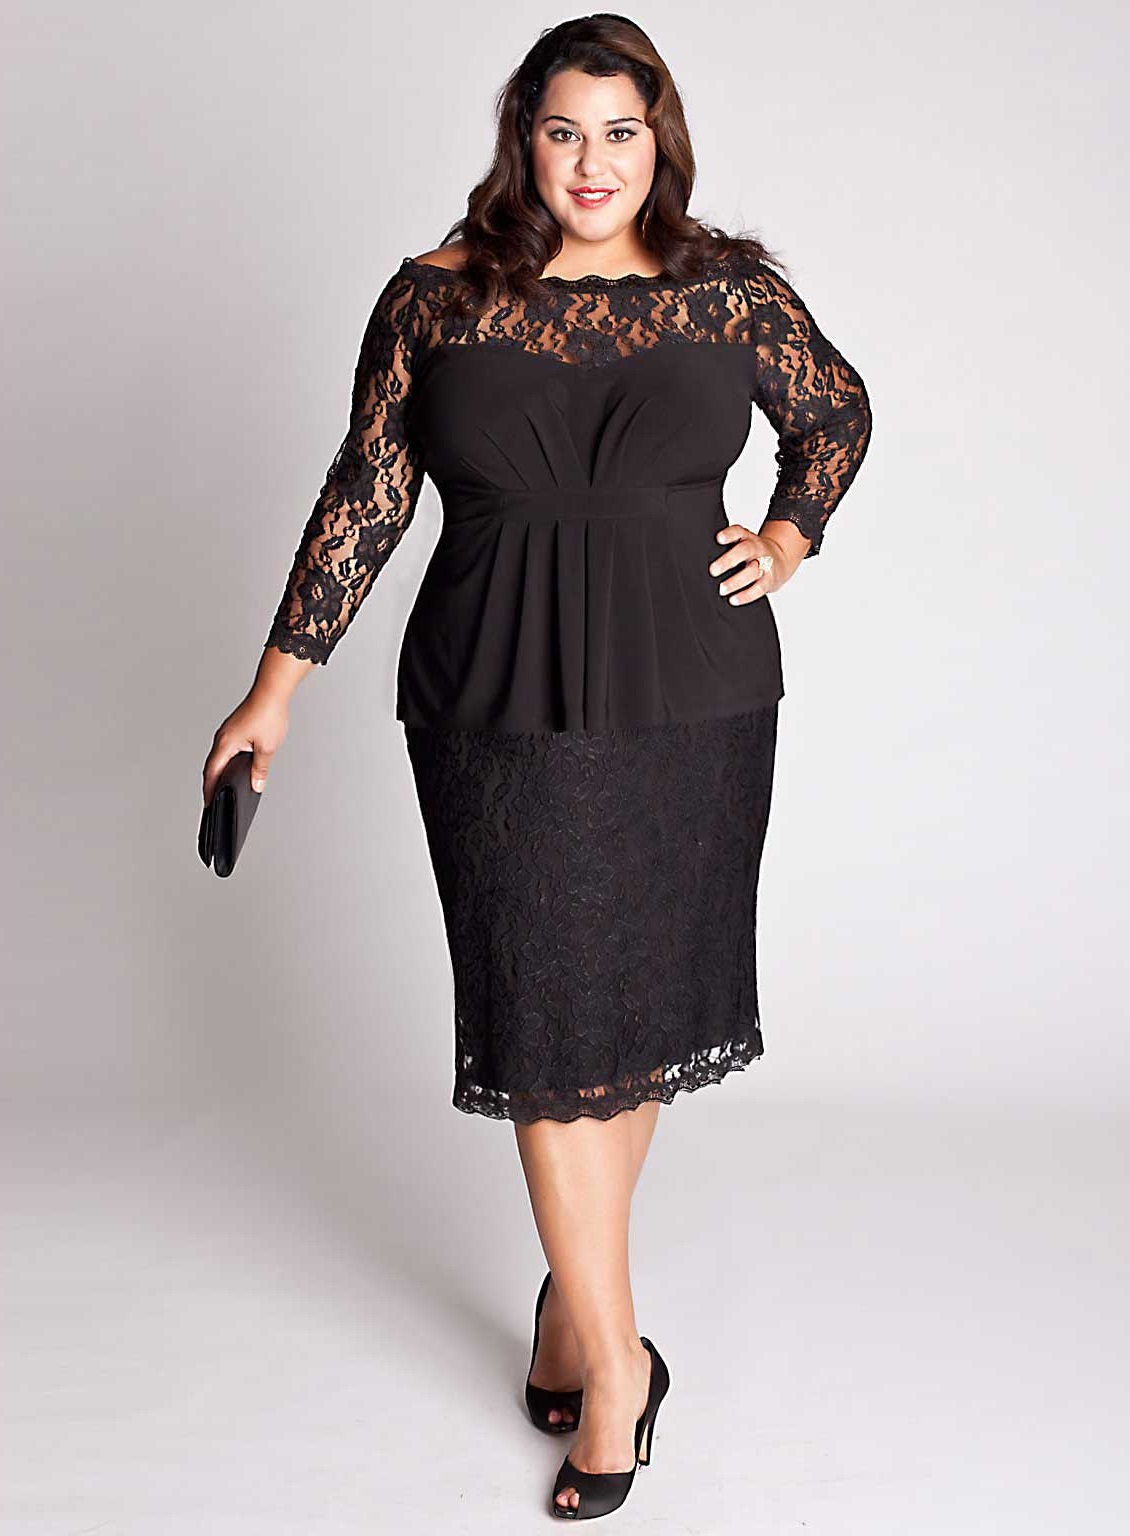 Find stylish plus size clothing that you are sure to love from dressbarn. Shop for gorgeous dresses, jeans, pants and much more in your size today!